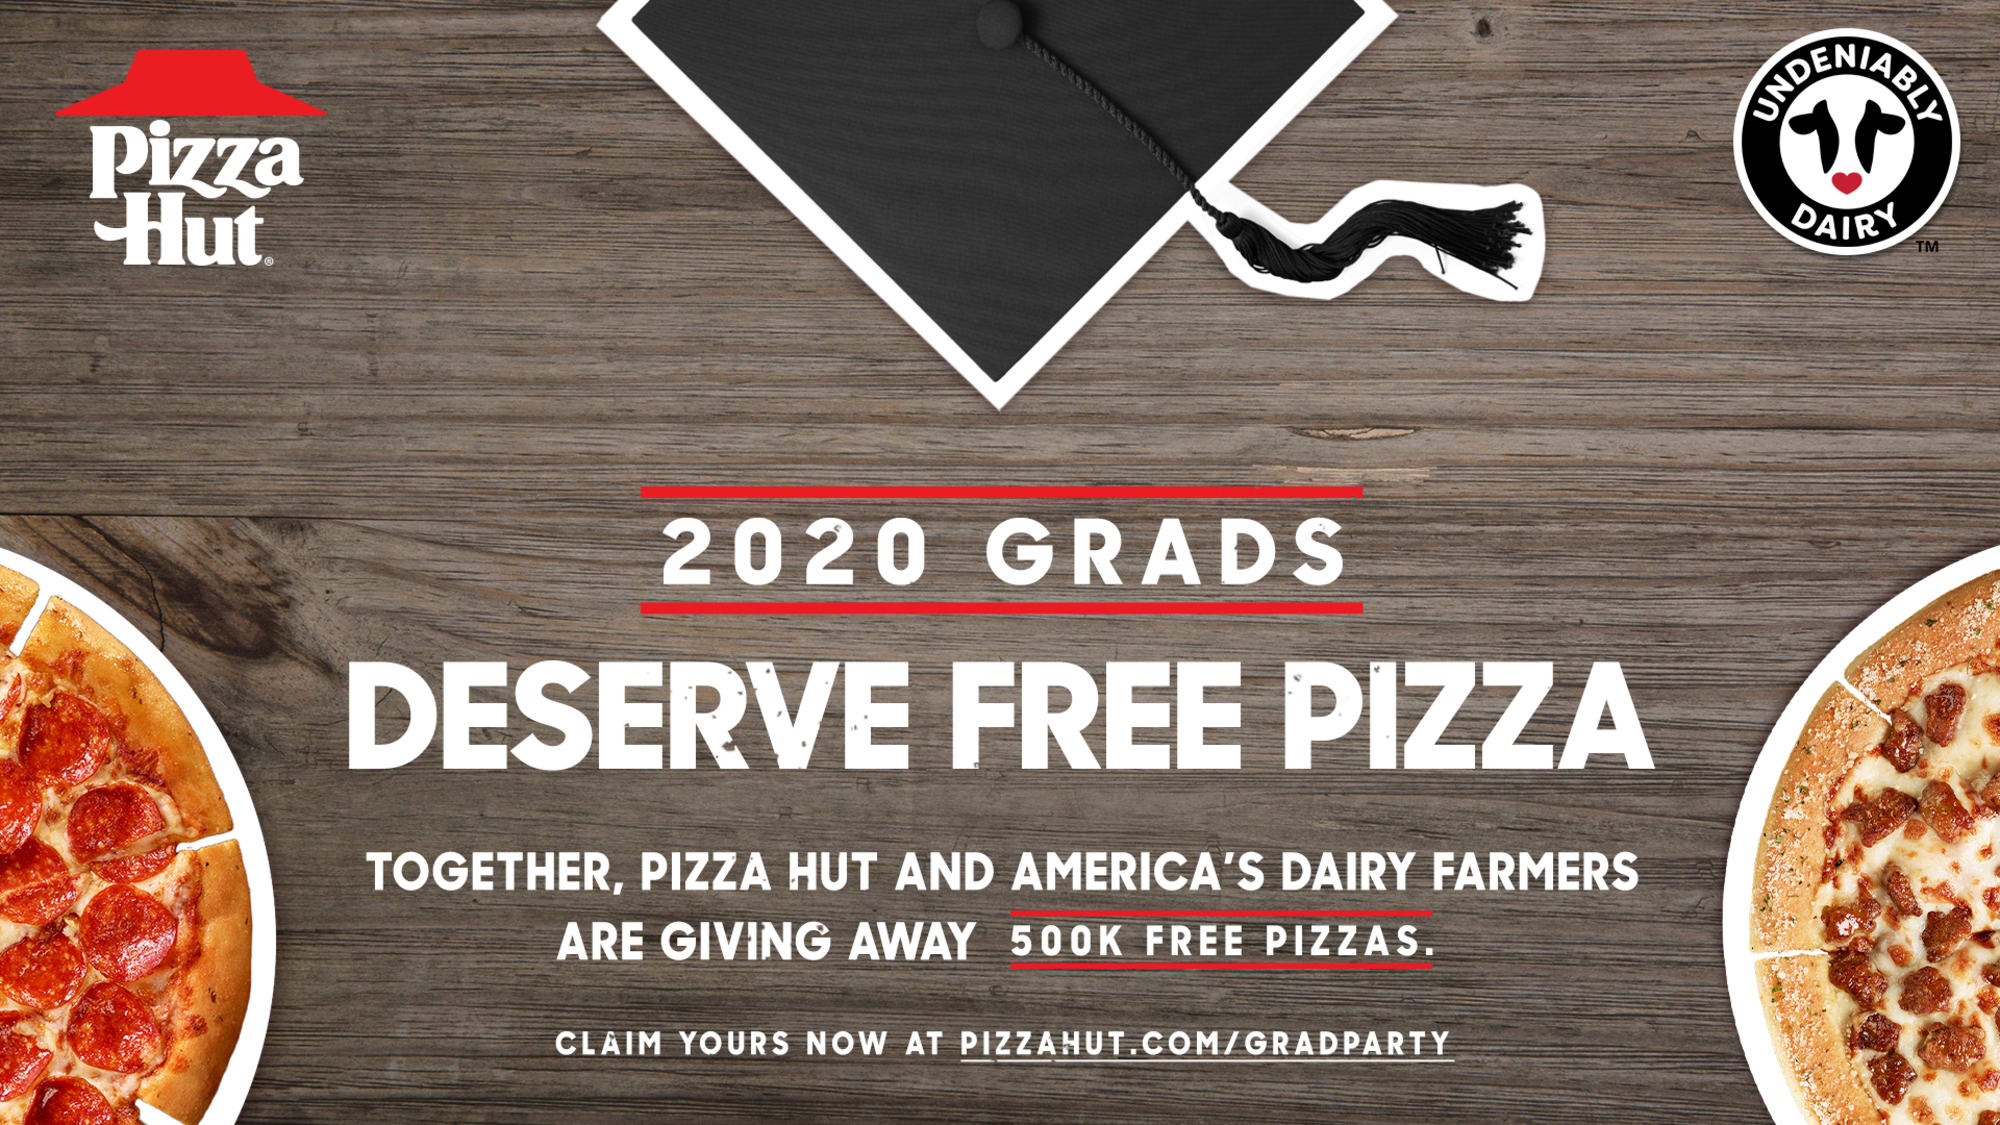 Free Pizza Hut pizza for 2020 graduates is a reason to celebrate